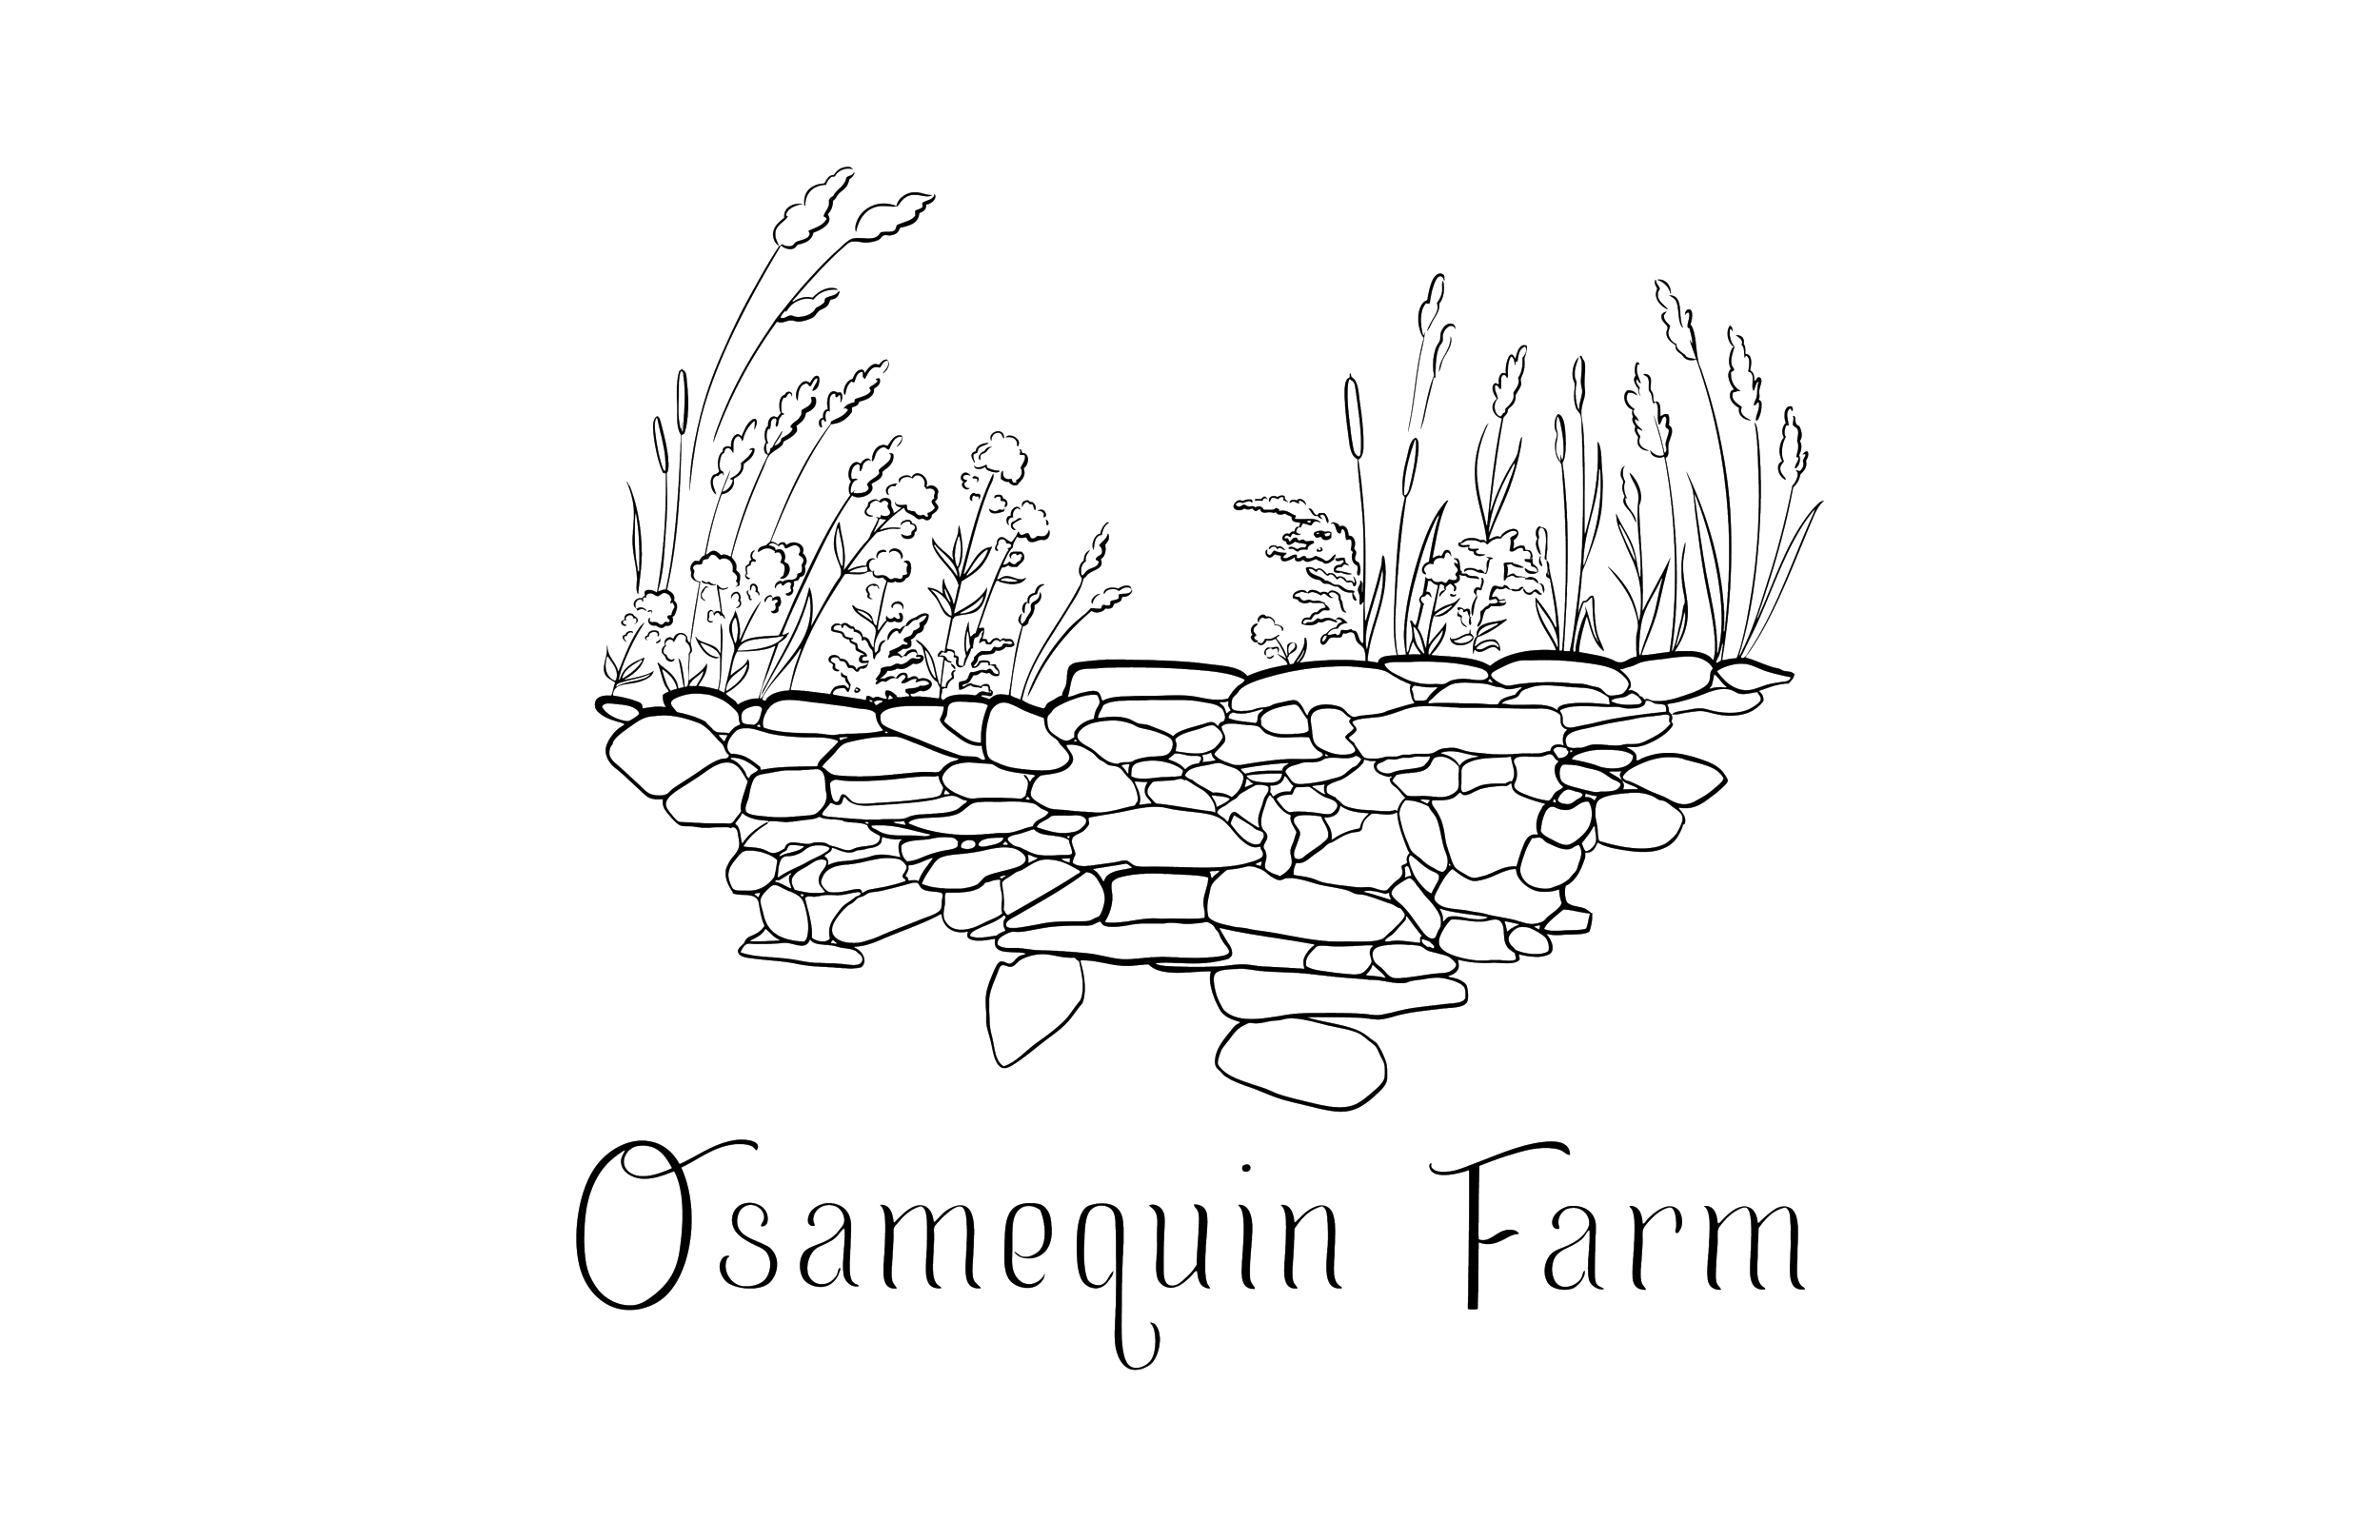 Our logo - Our logo is a representation of the view of the marsh from the bridge over Walnut Street, which in pre-colonial times was known as the long dam. The Wampanoag people created the dam to control the waters of the Runnins River that still flow through the farm and create a vast marsh. Later inhabitants added the stone wall, and then the paved street that we use as the farm driveway today. The image also includes goldenrod and joe-pye weed, which grow wild and abundantly along this marsh and others on the property, and throughout the northeast. These two plants are often seen growing together, and they are beloved by pollinators and floral designers alike.Our hope is that the logo we use today brings together the many stories at play at Osamequin Farm - the first peoples' footprint on the land, the colonial era modifications, and the symbiotic relationship between the farmers and the native landscape.